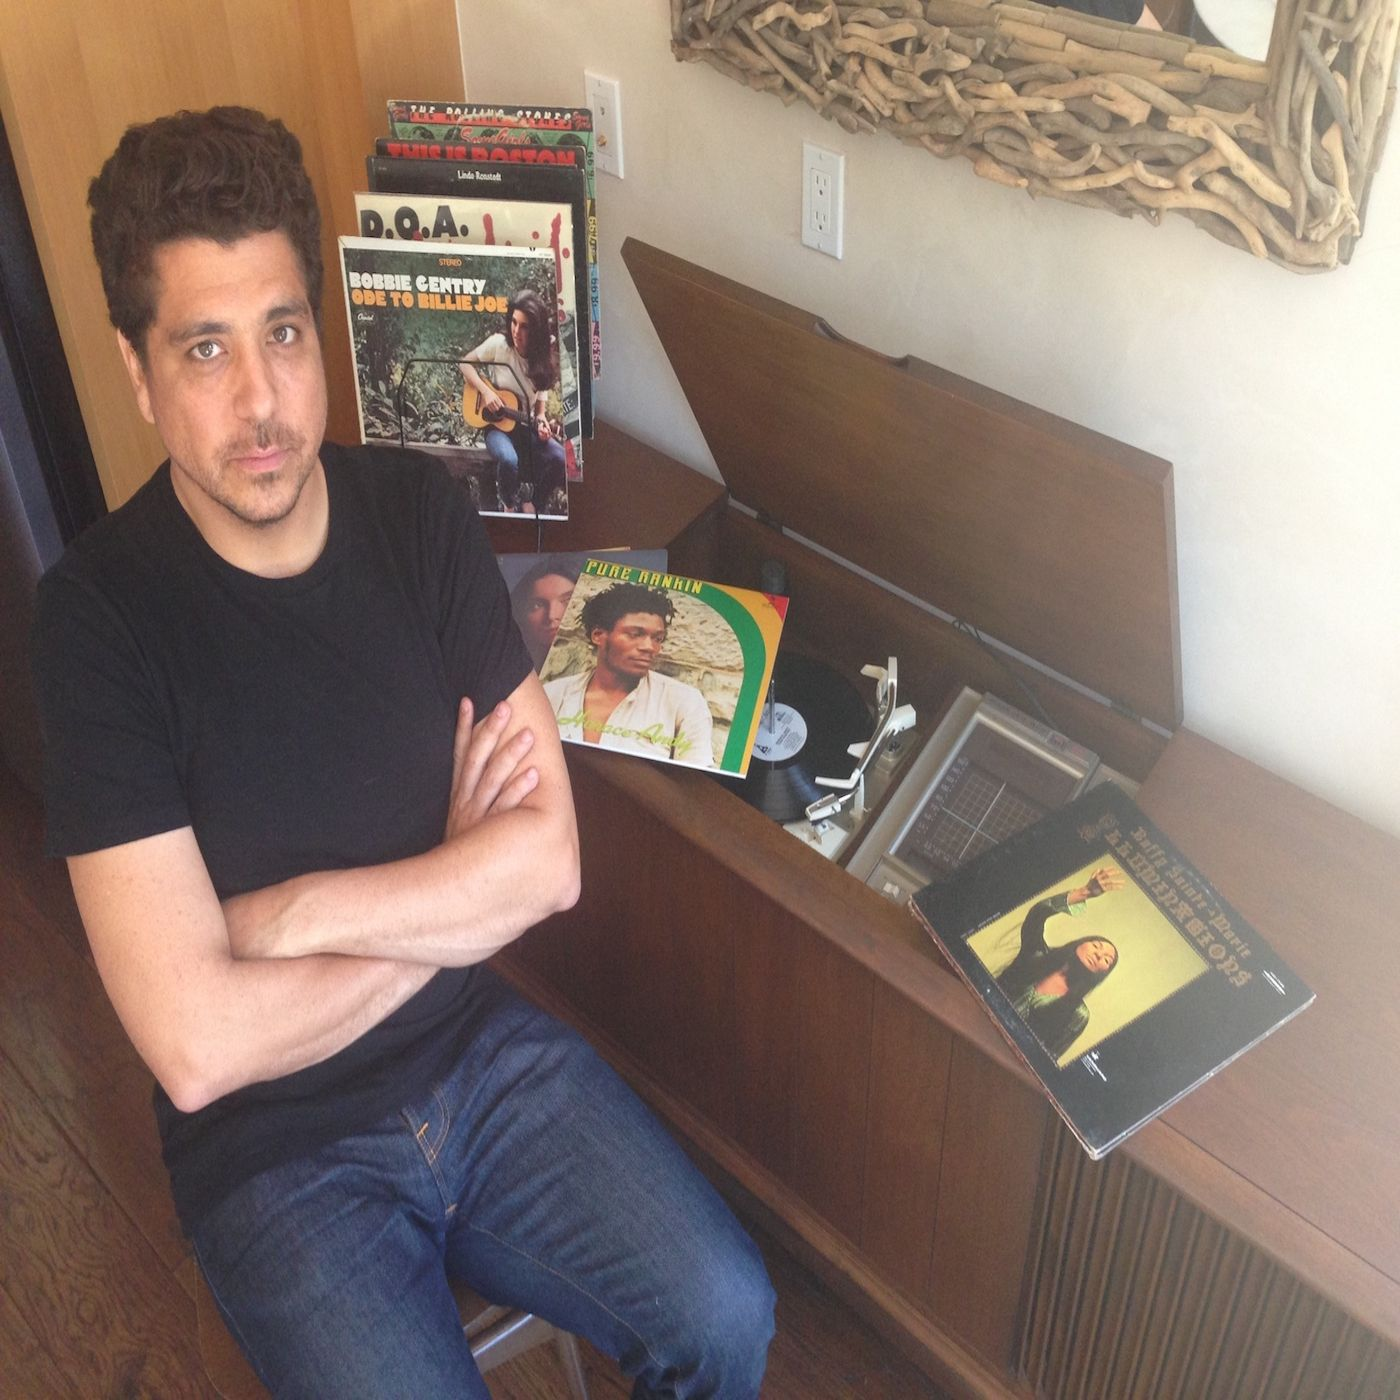 The Storytelling Show With David Bason